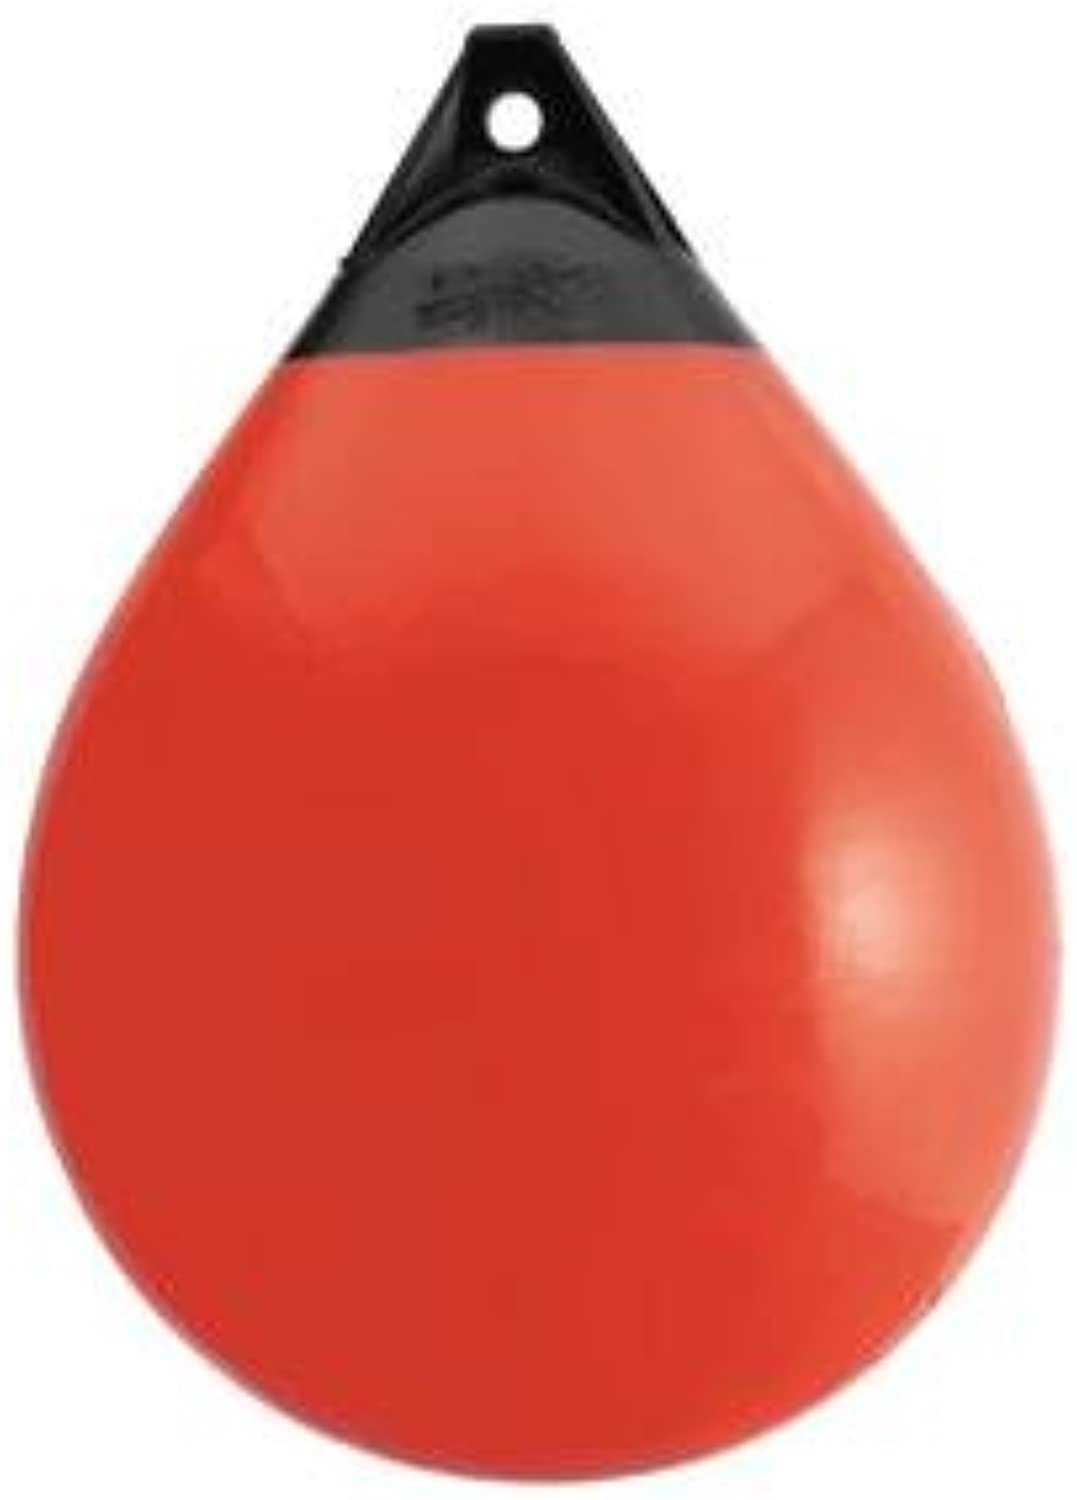 Polyform Buoy 21.5X28 Red A4 Red